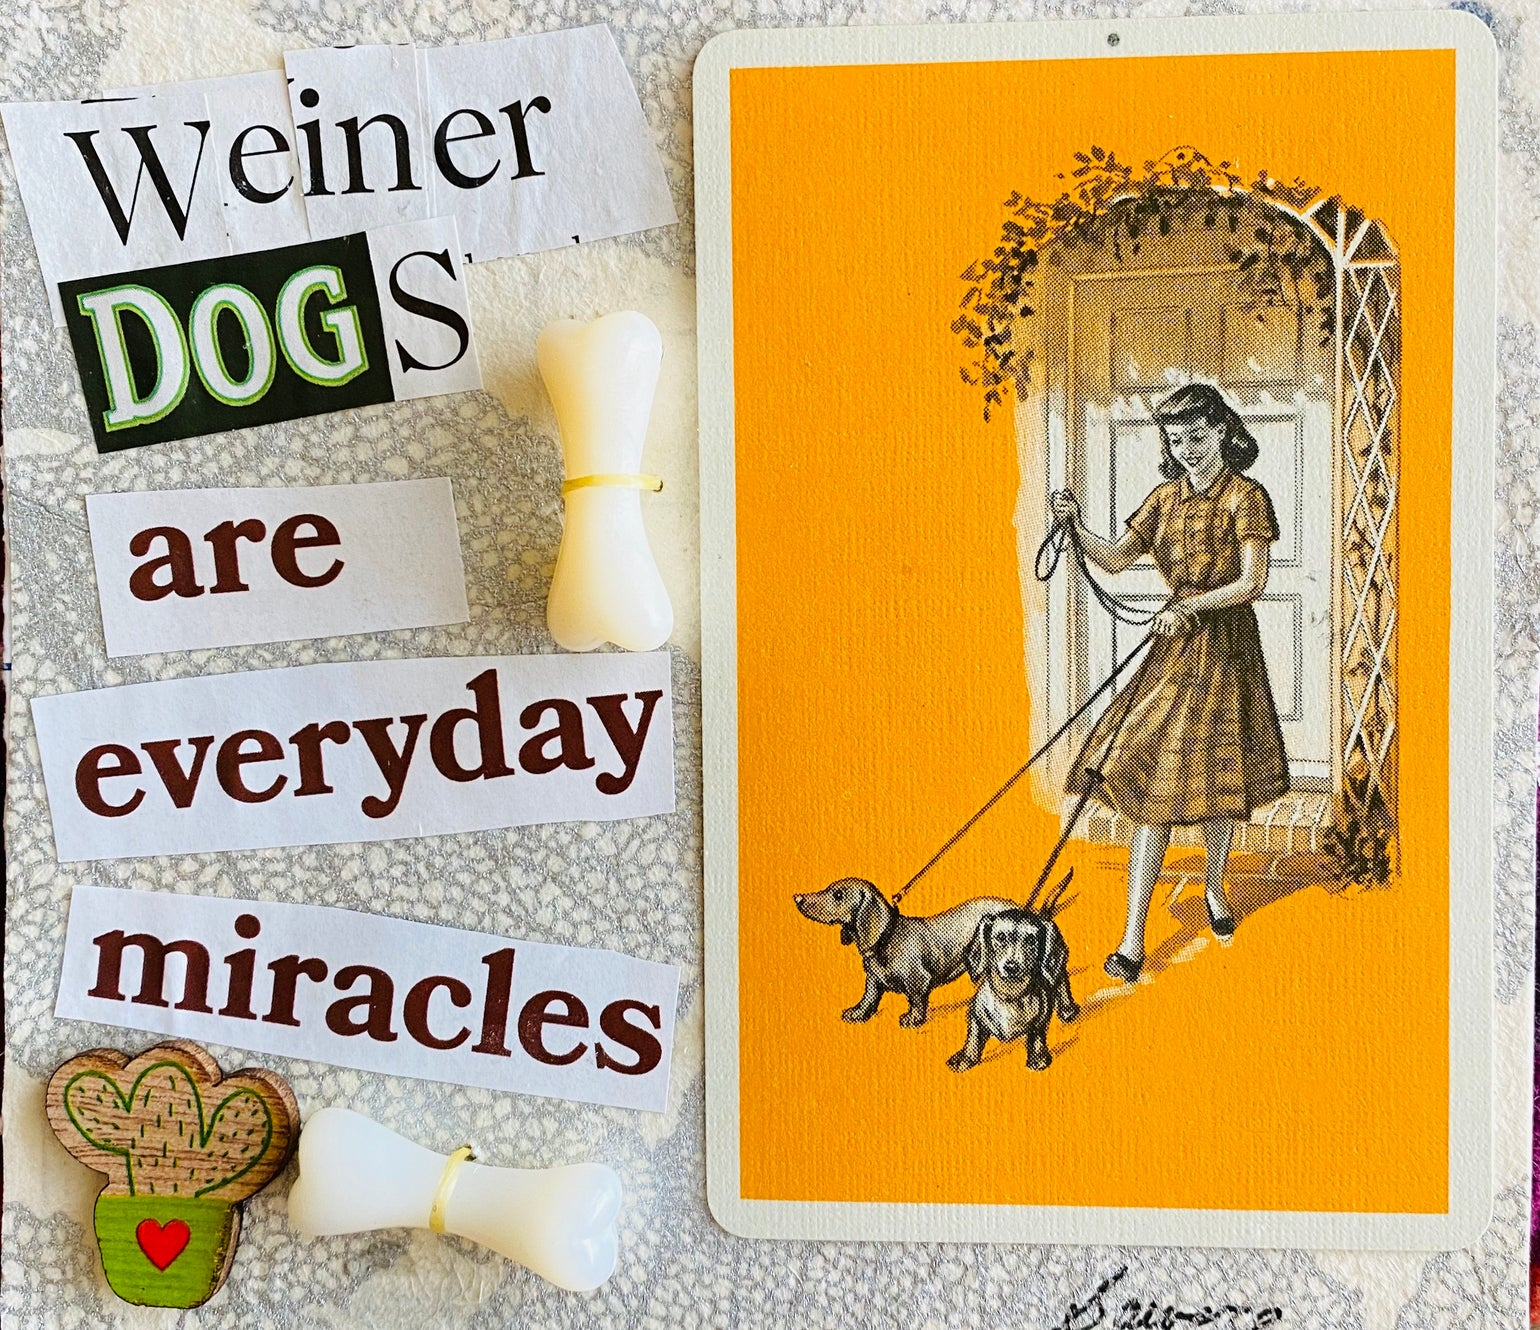 Image of Weiner dogs are everyday miracles